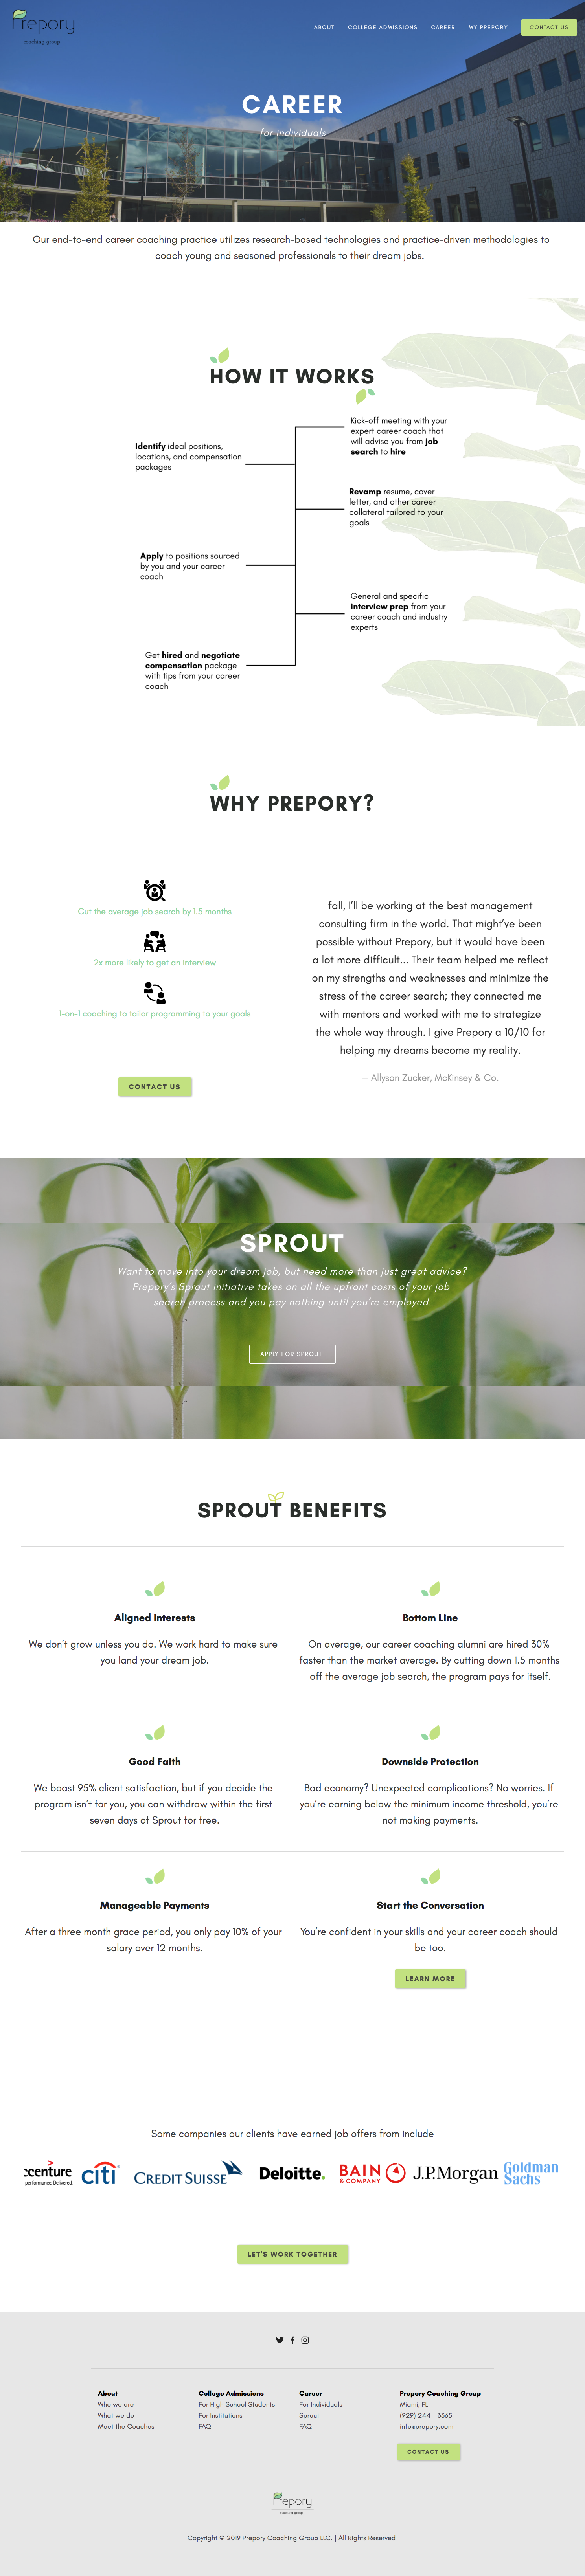 Squarespace website design seo Lauren Aloia